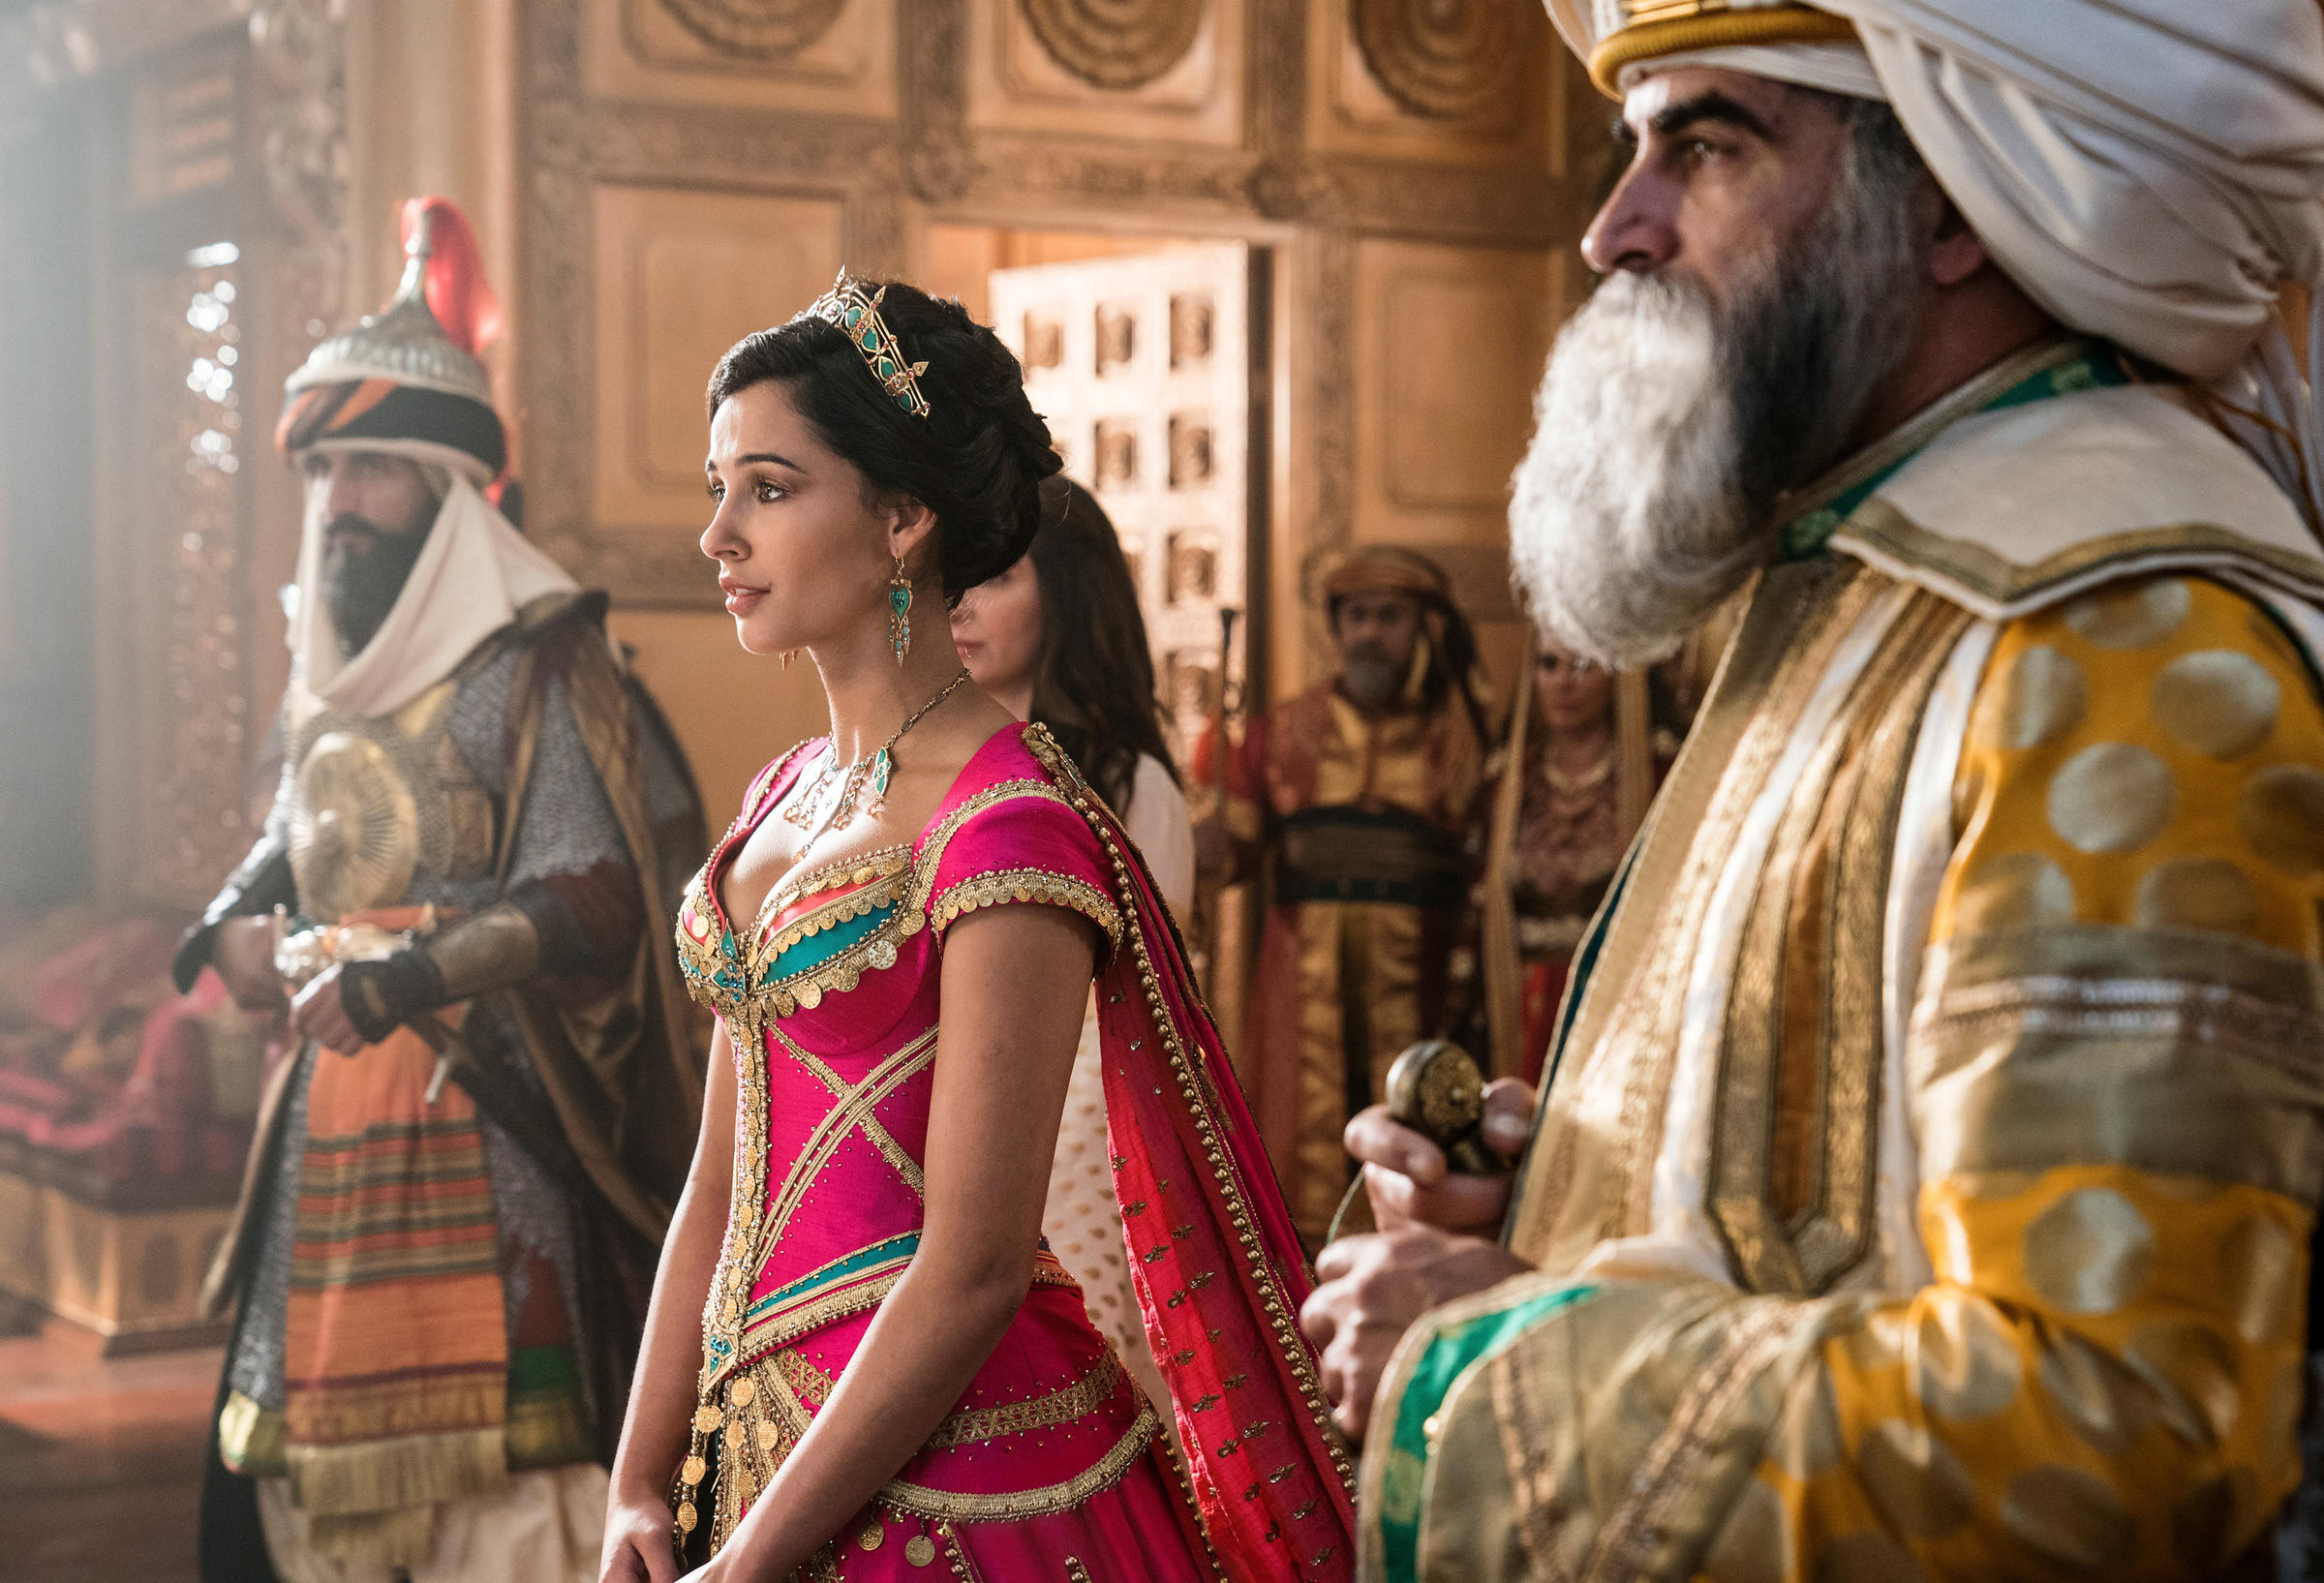 Jasmine naomi scott from the new live action aladdin the character was the first official disney princess of color in the 1992 animated version of the